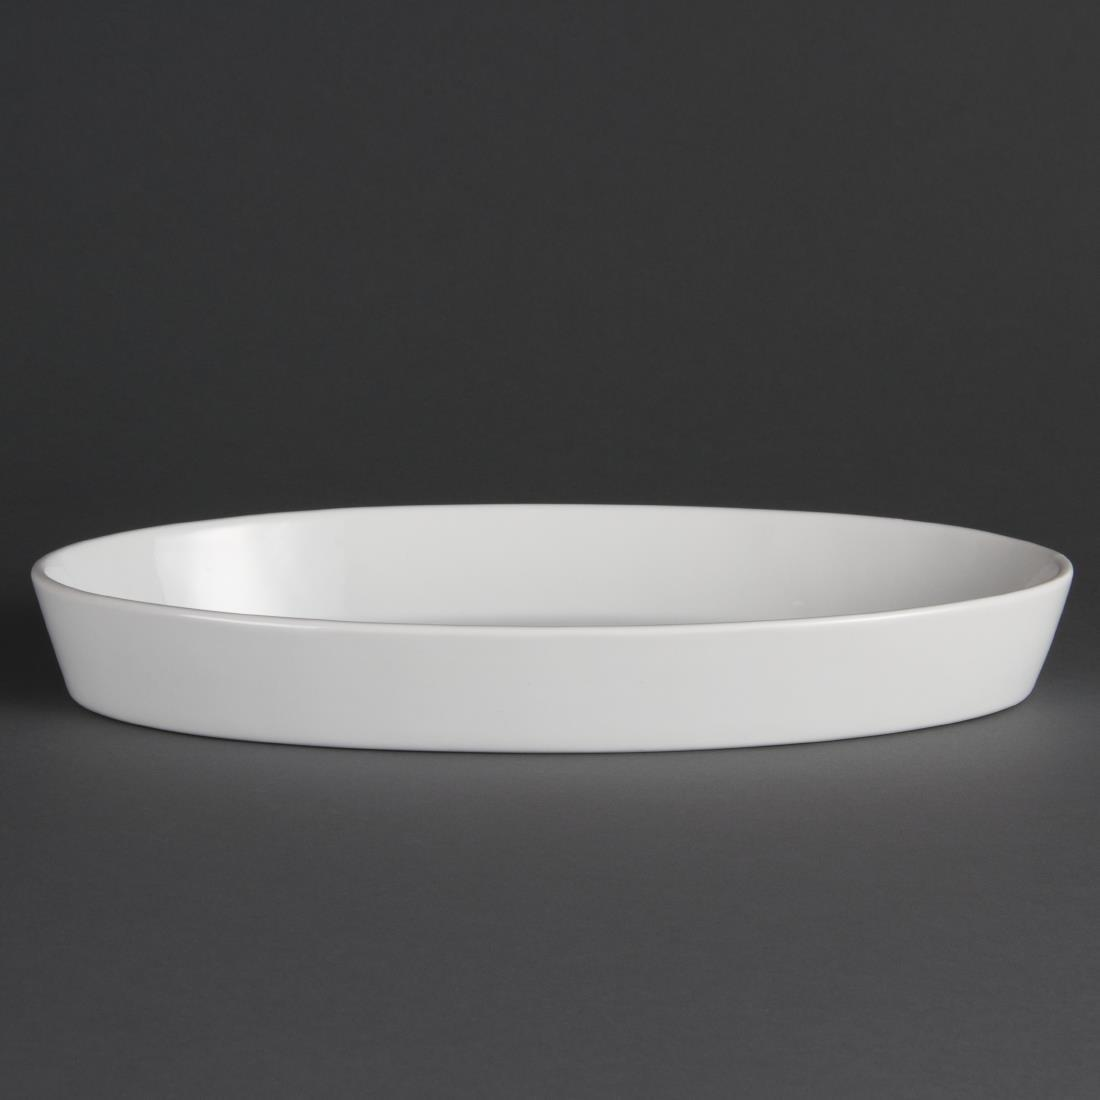 W422 - Olympia Whiteware Oval Sole Dish